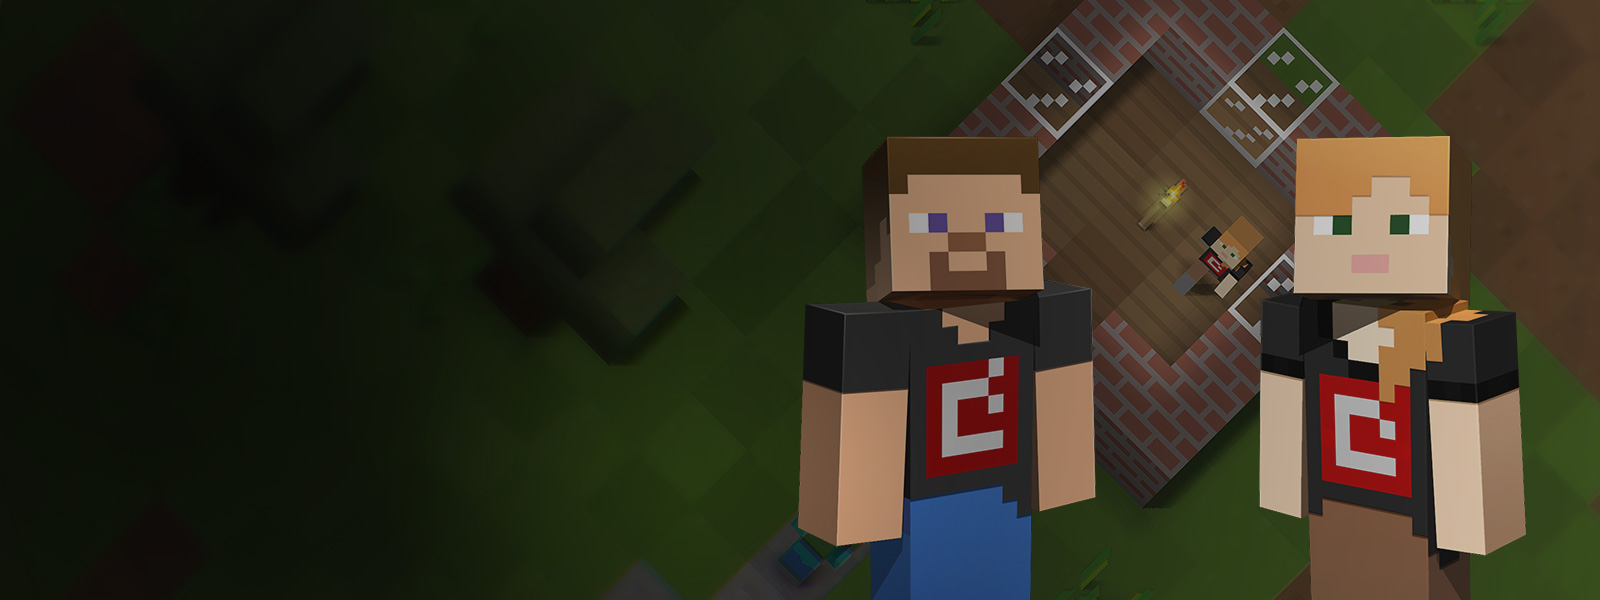 Two Minecraft game characters